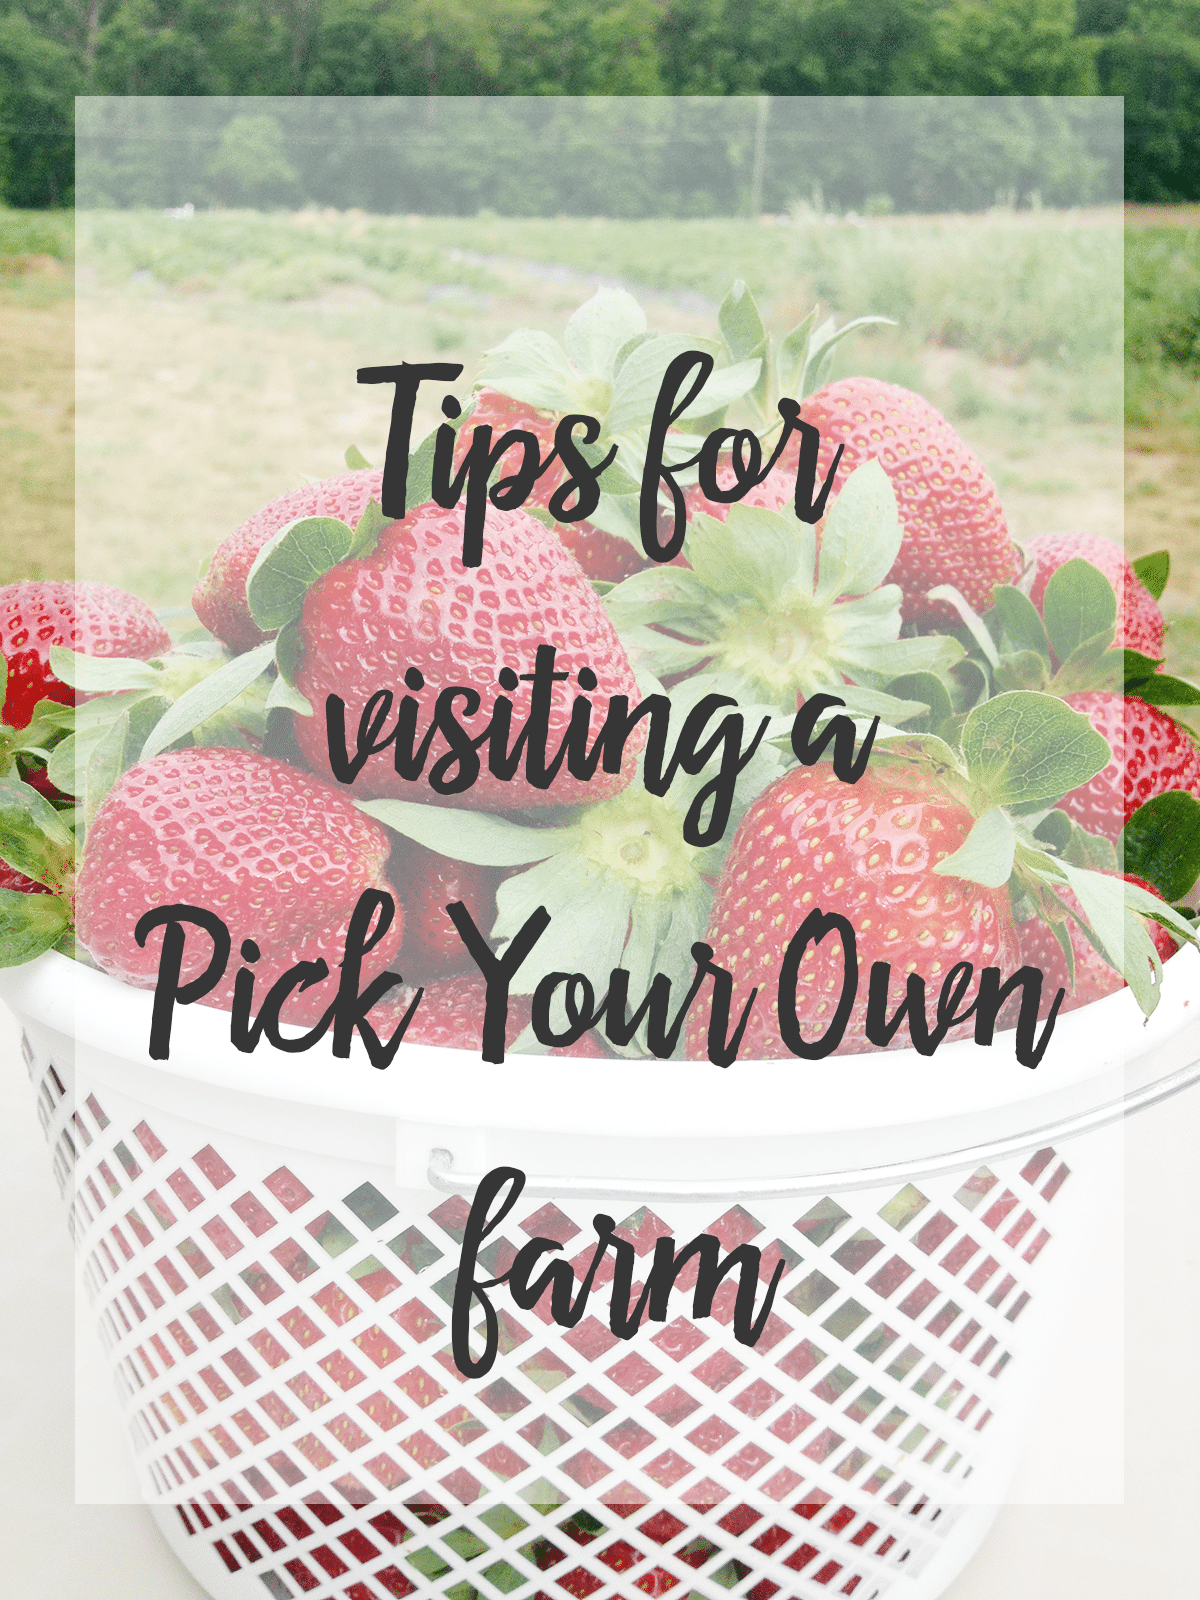 Tips for visiting a pick your own farm